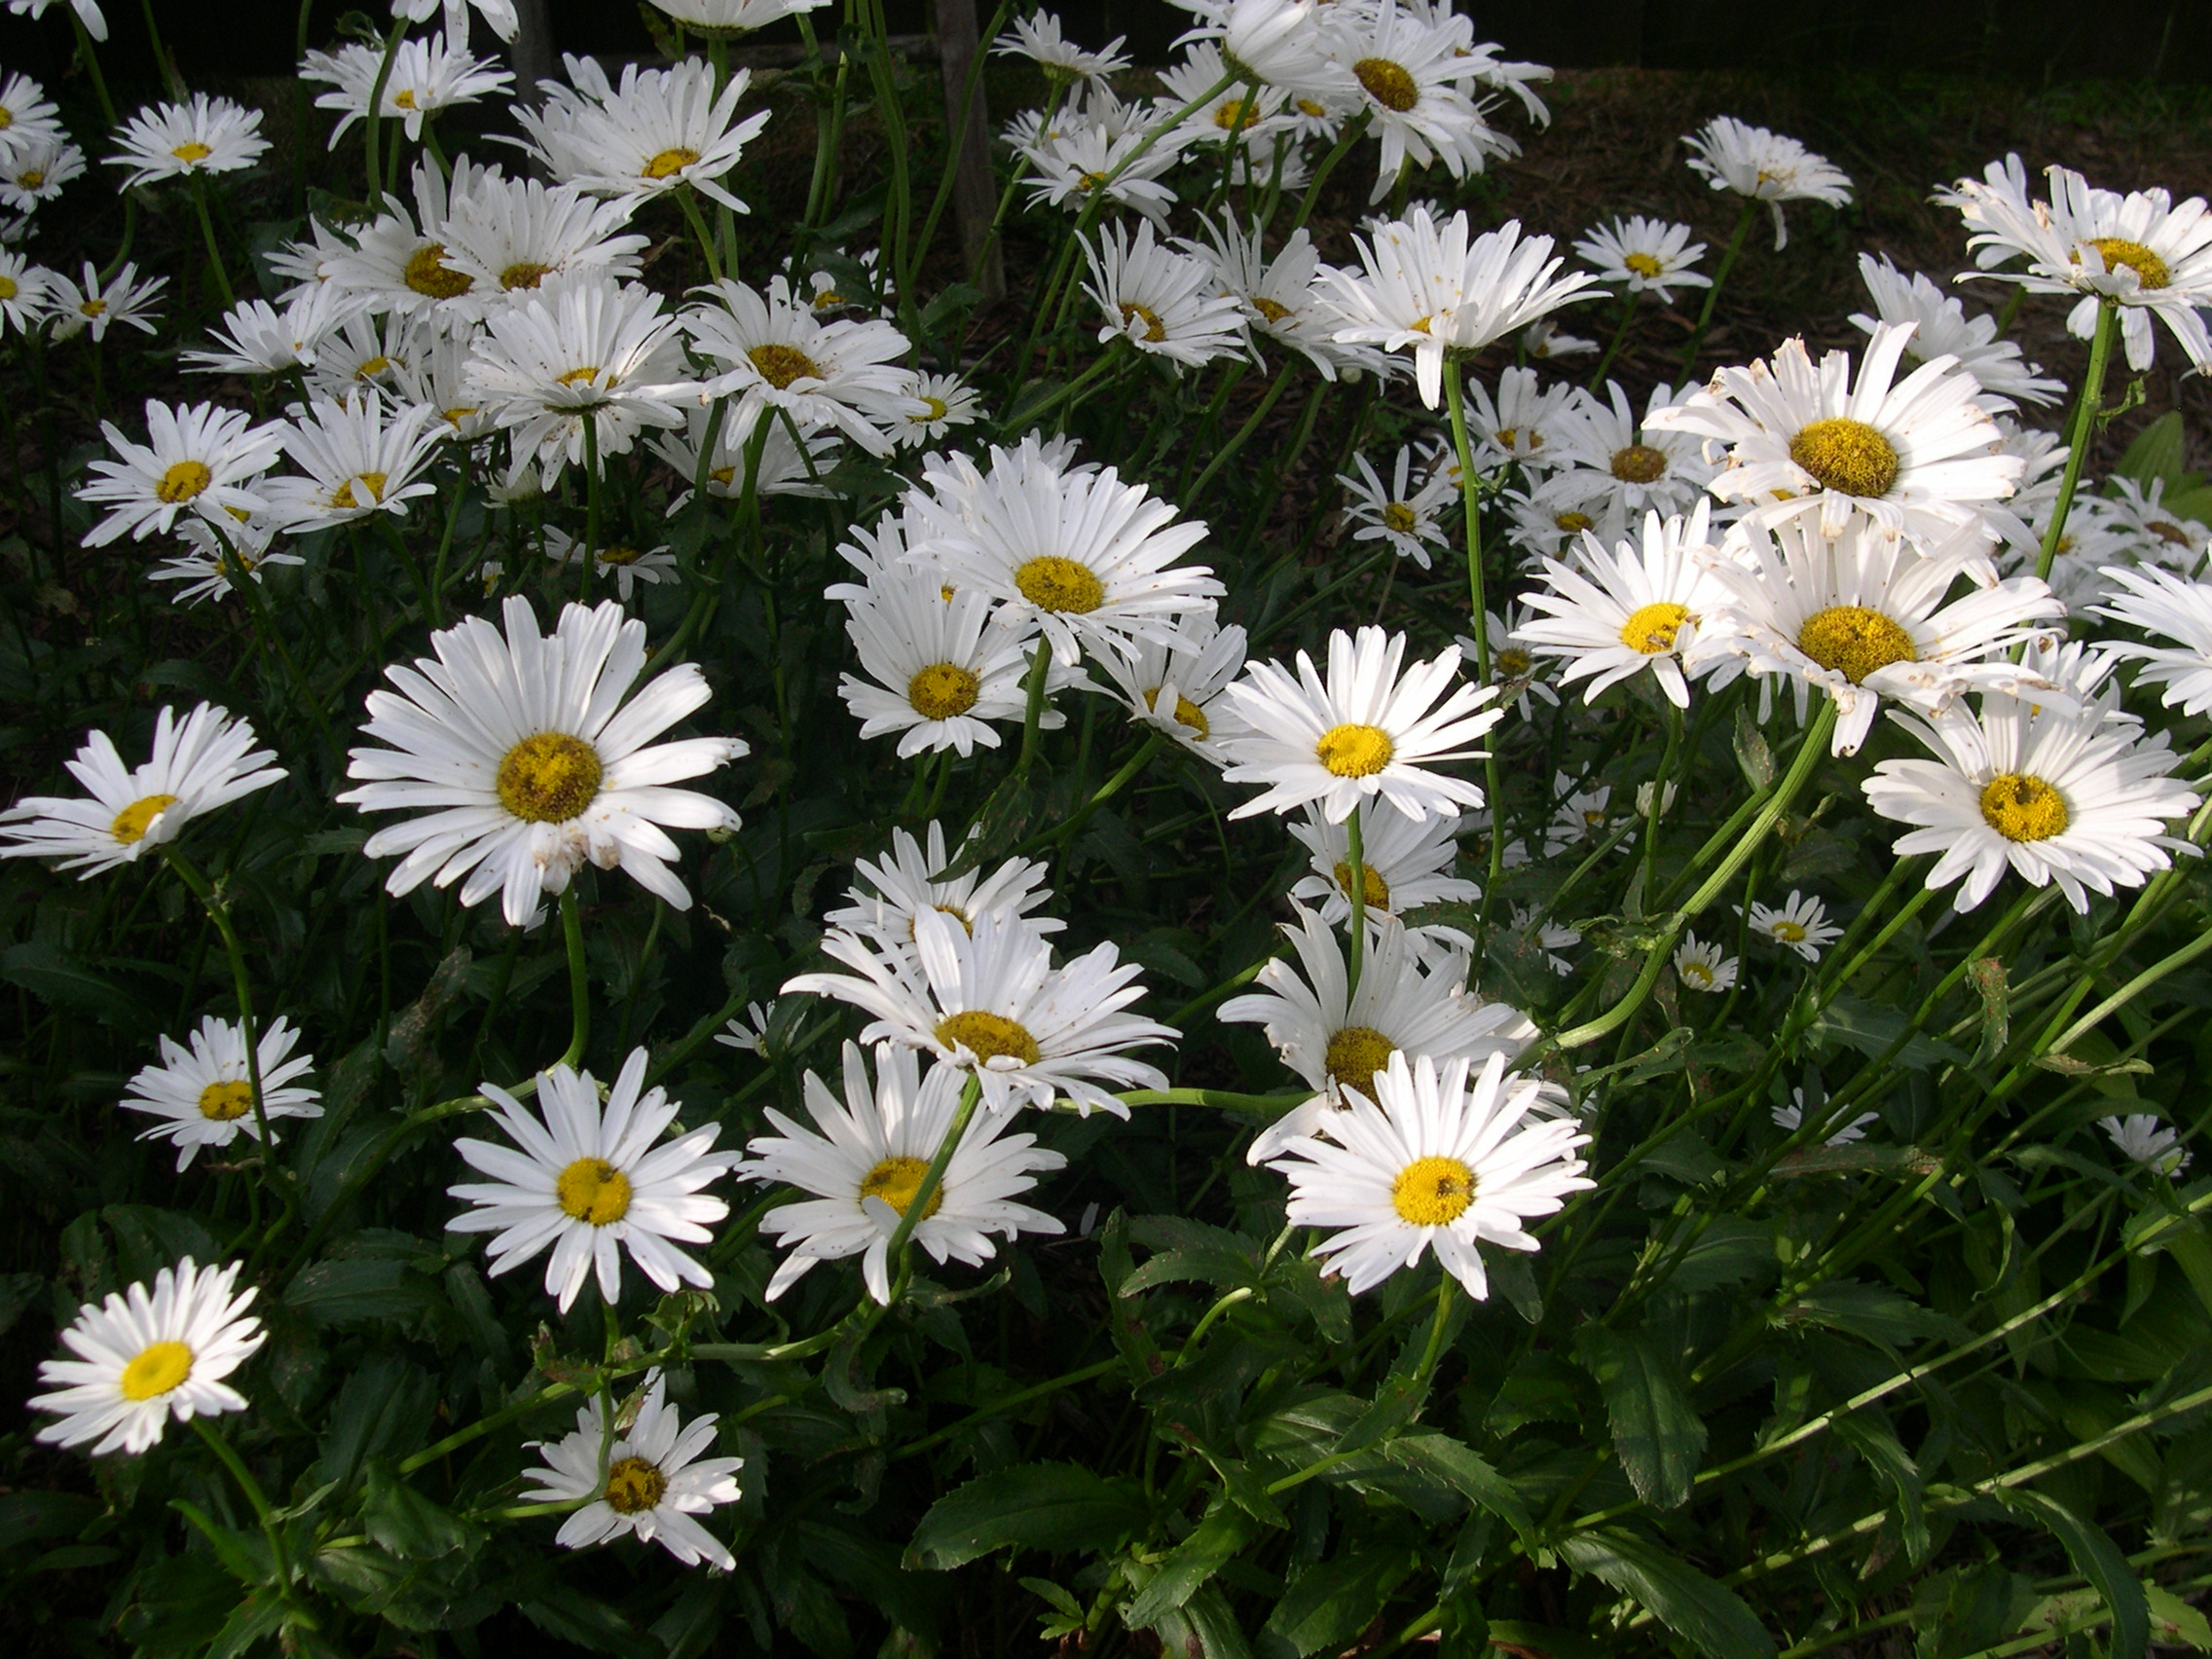 lovely white daisies